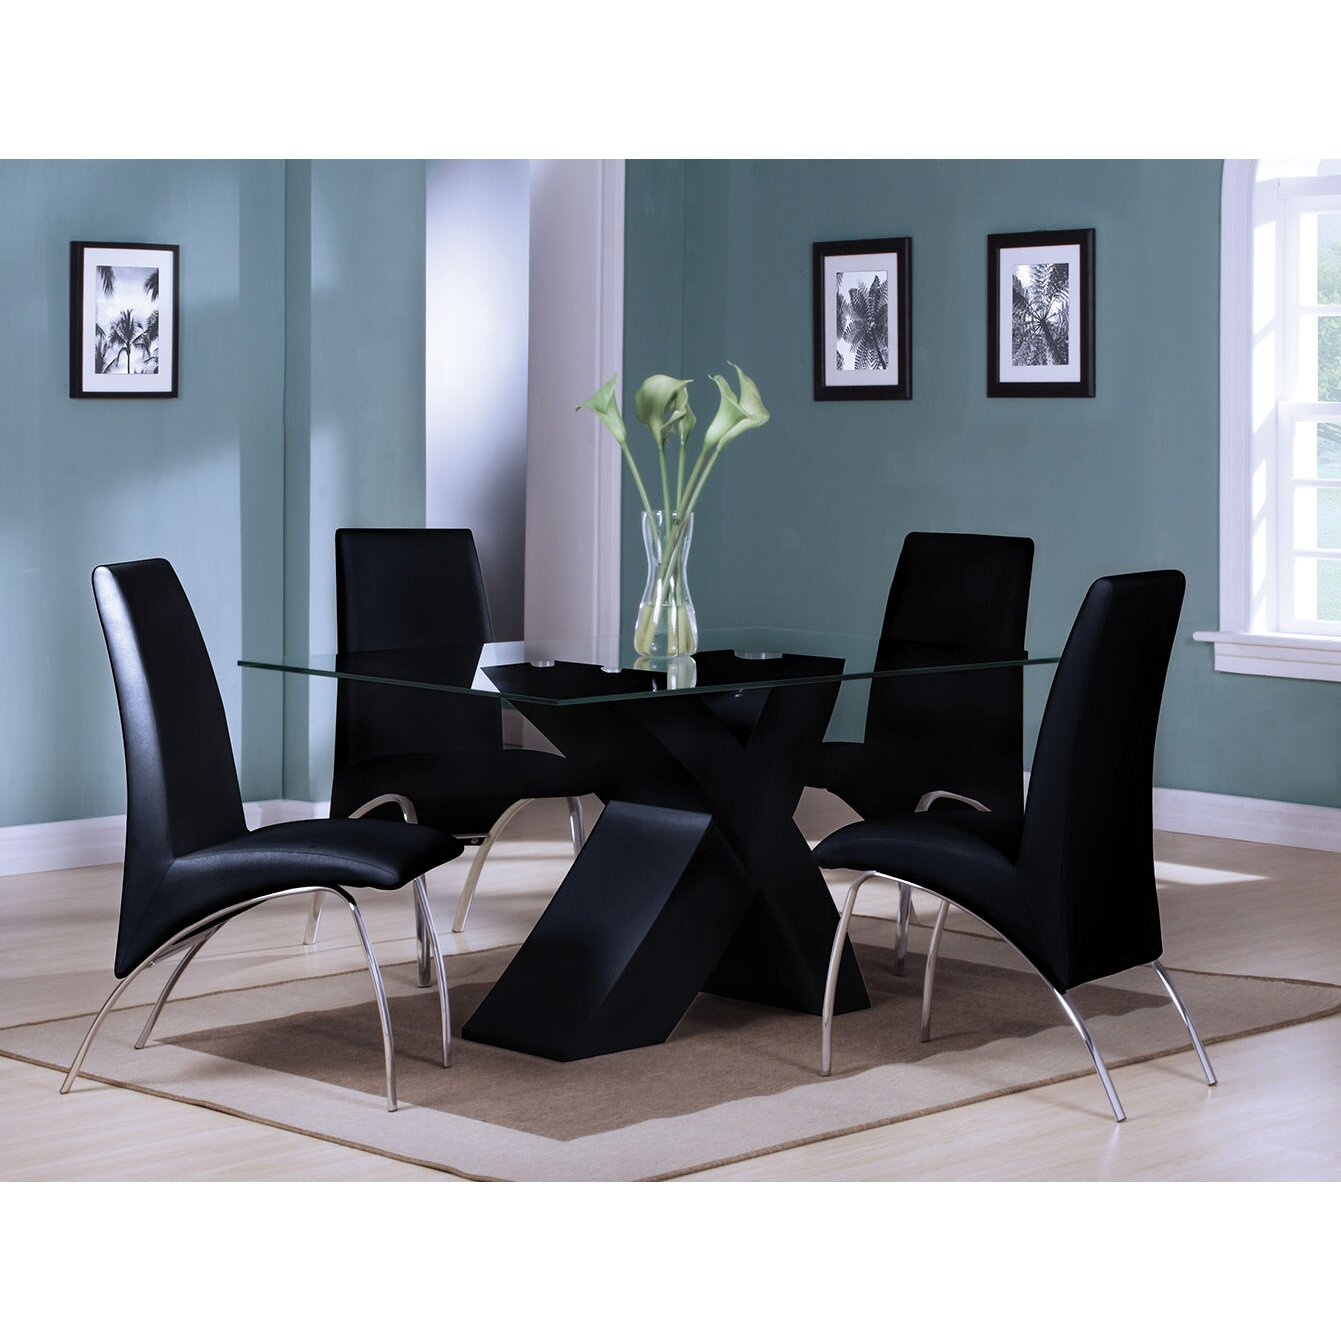 A j homes studio angelica 5 piece dining set - Angelica kitchen delivery ...